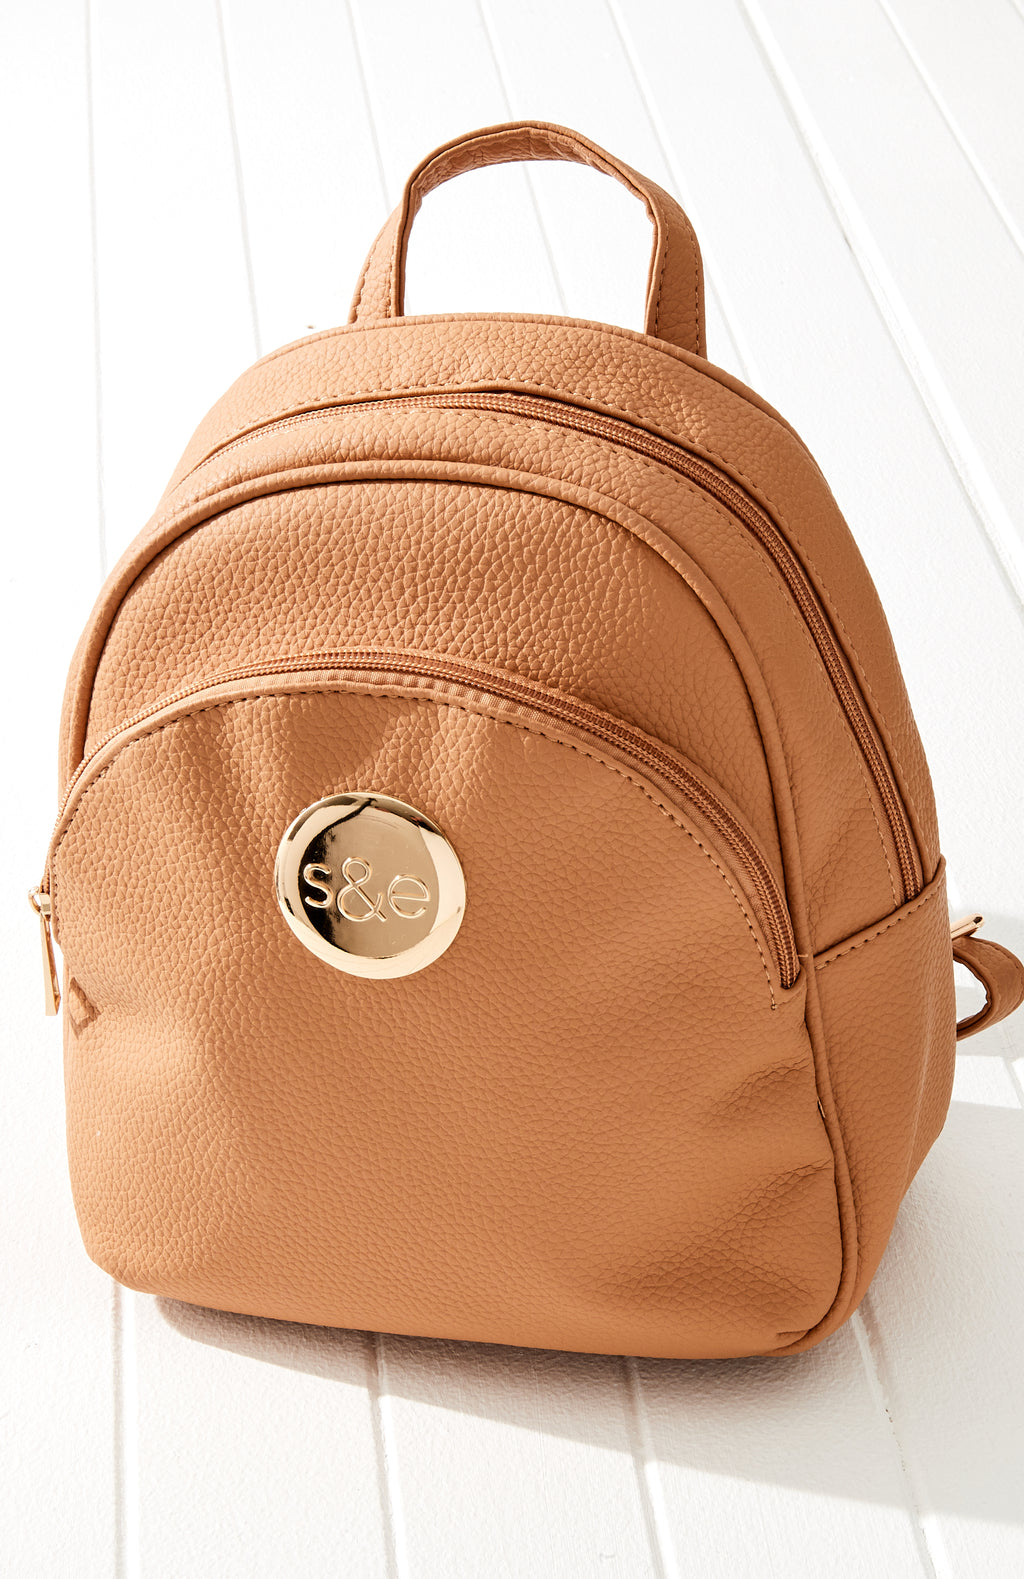 AS995306 S&E Classic Backpack